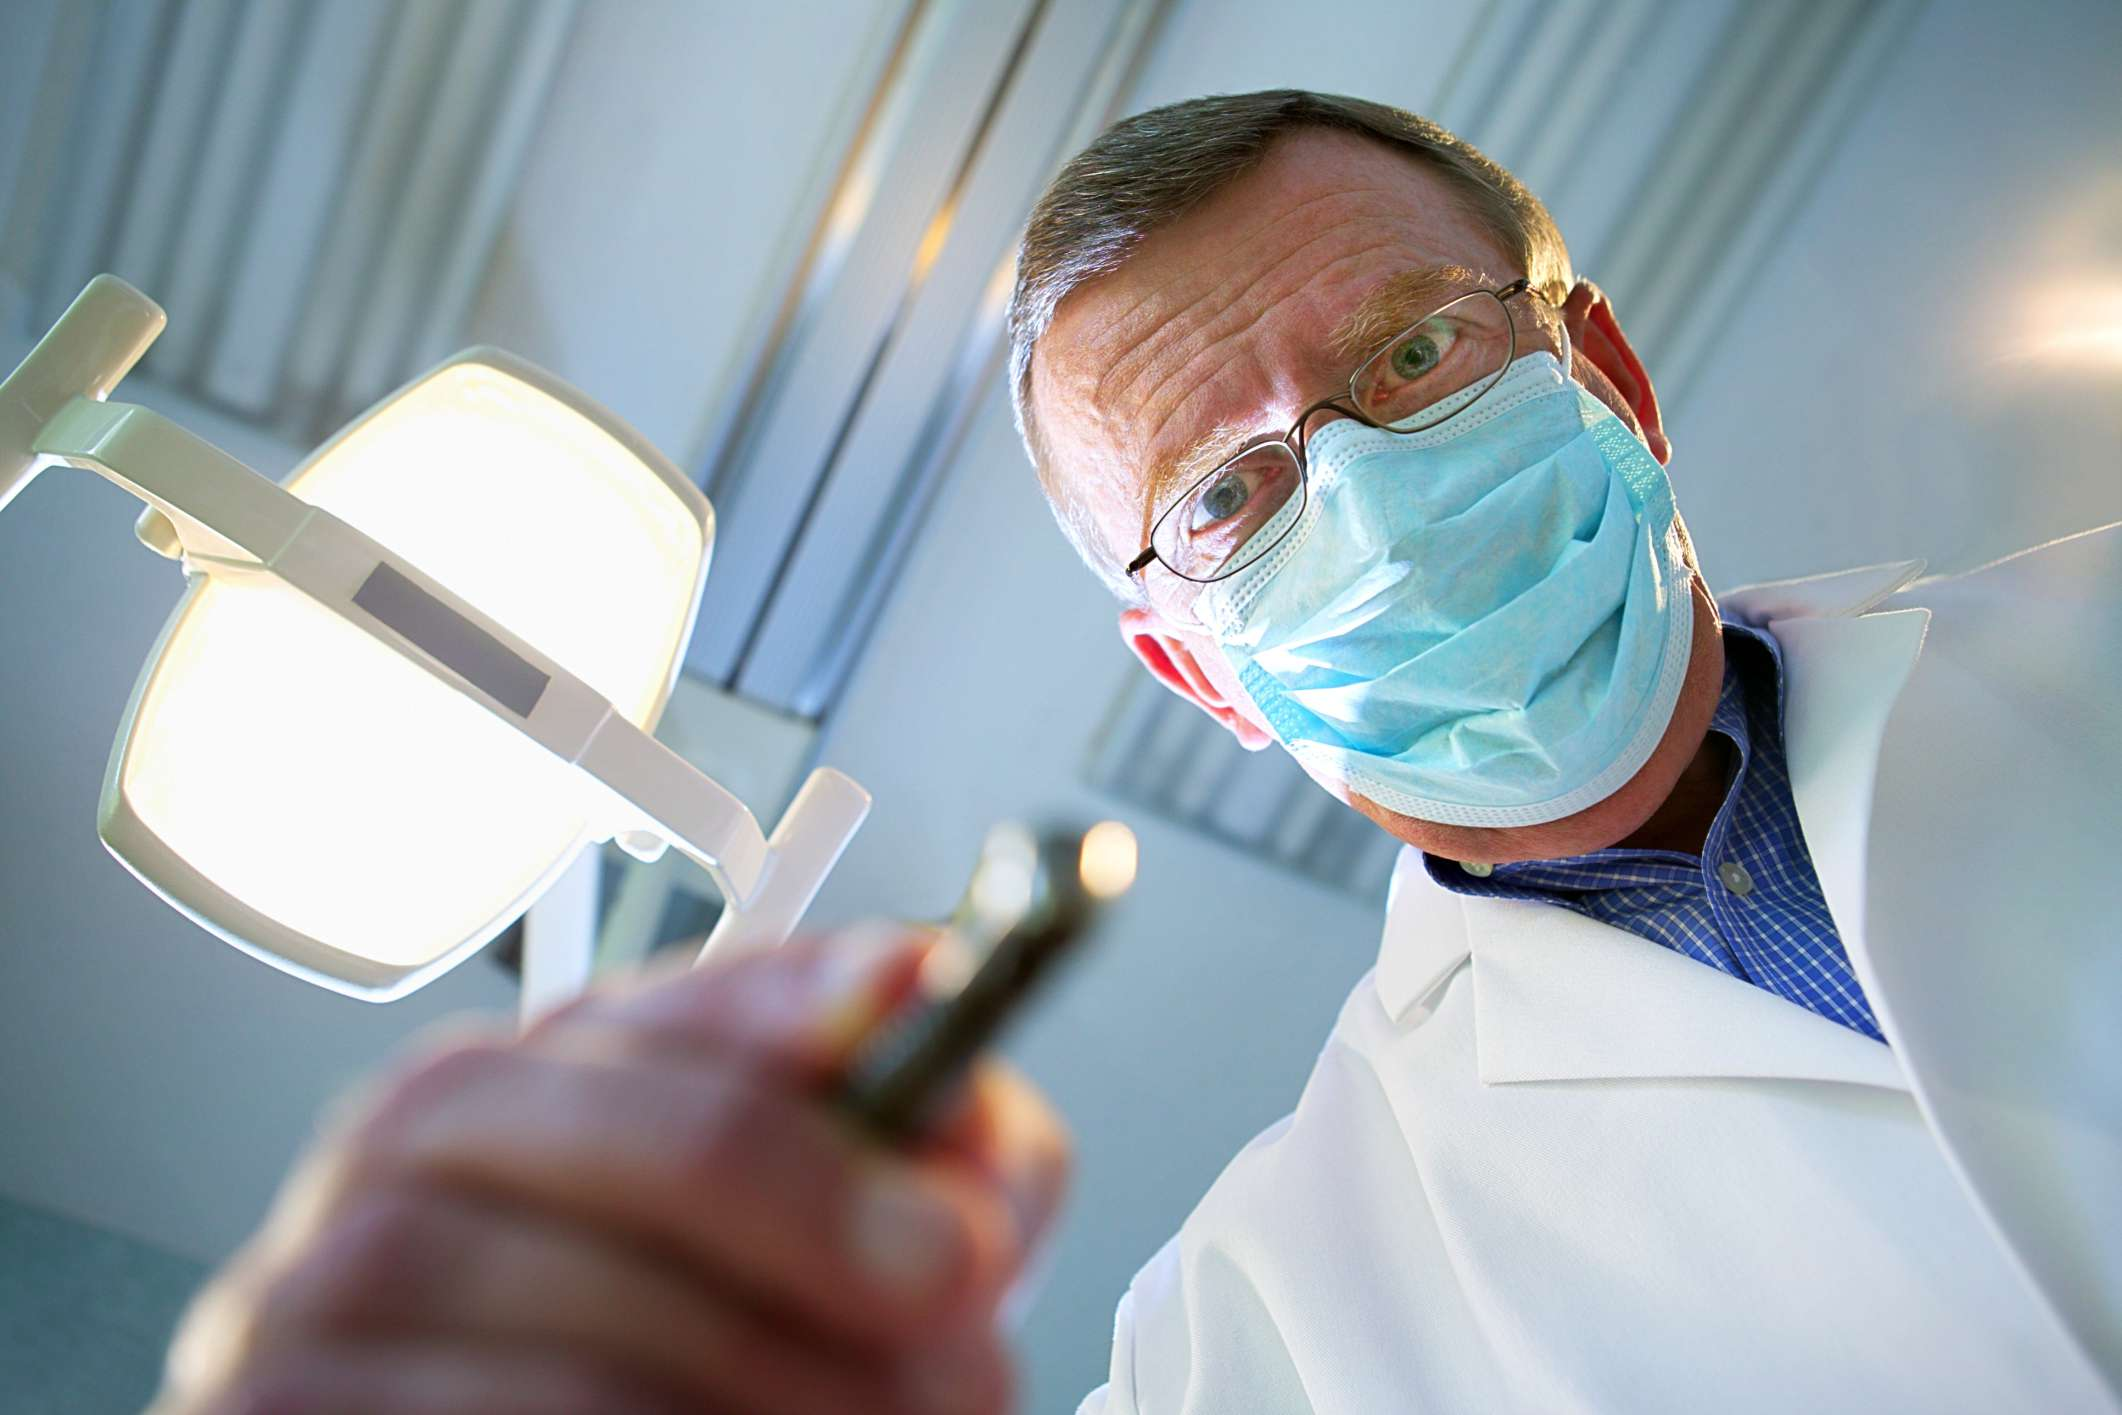 A dentist working - from the perspective of a patient